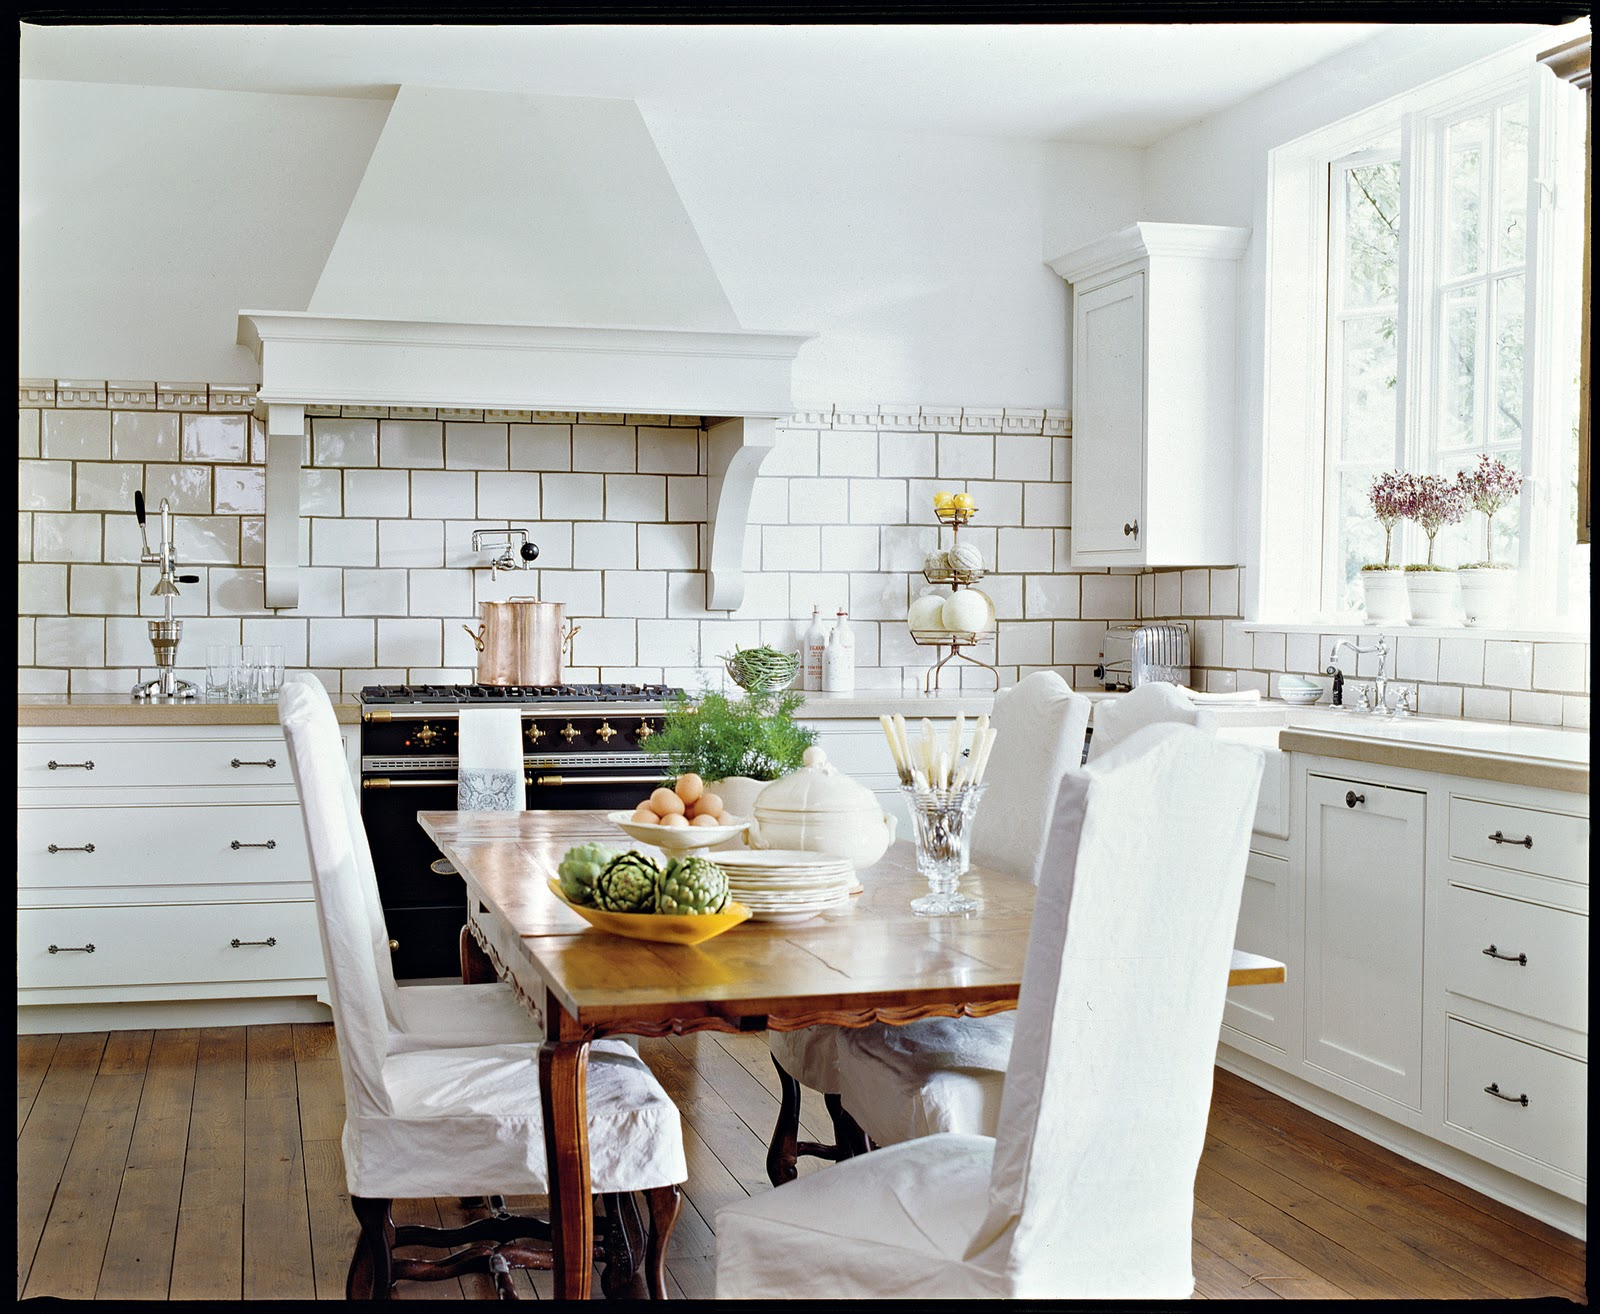 Slipcovers for kitchen chairs Photo - 1